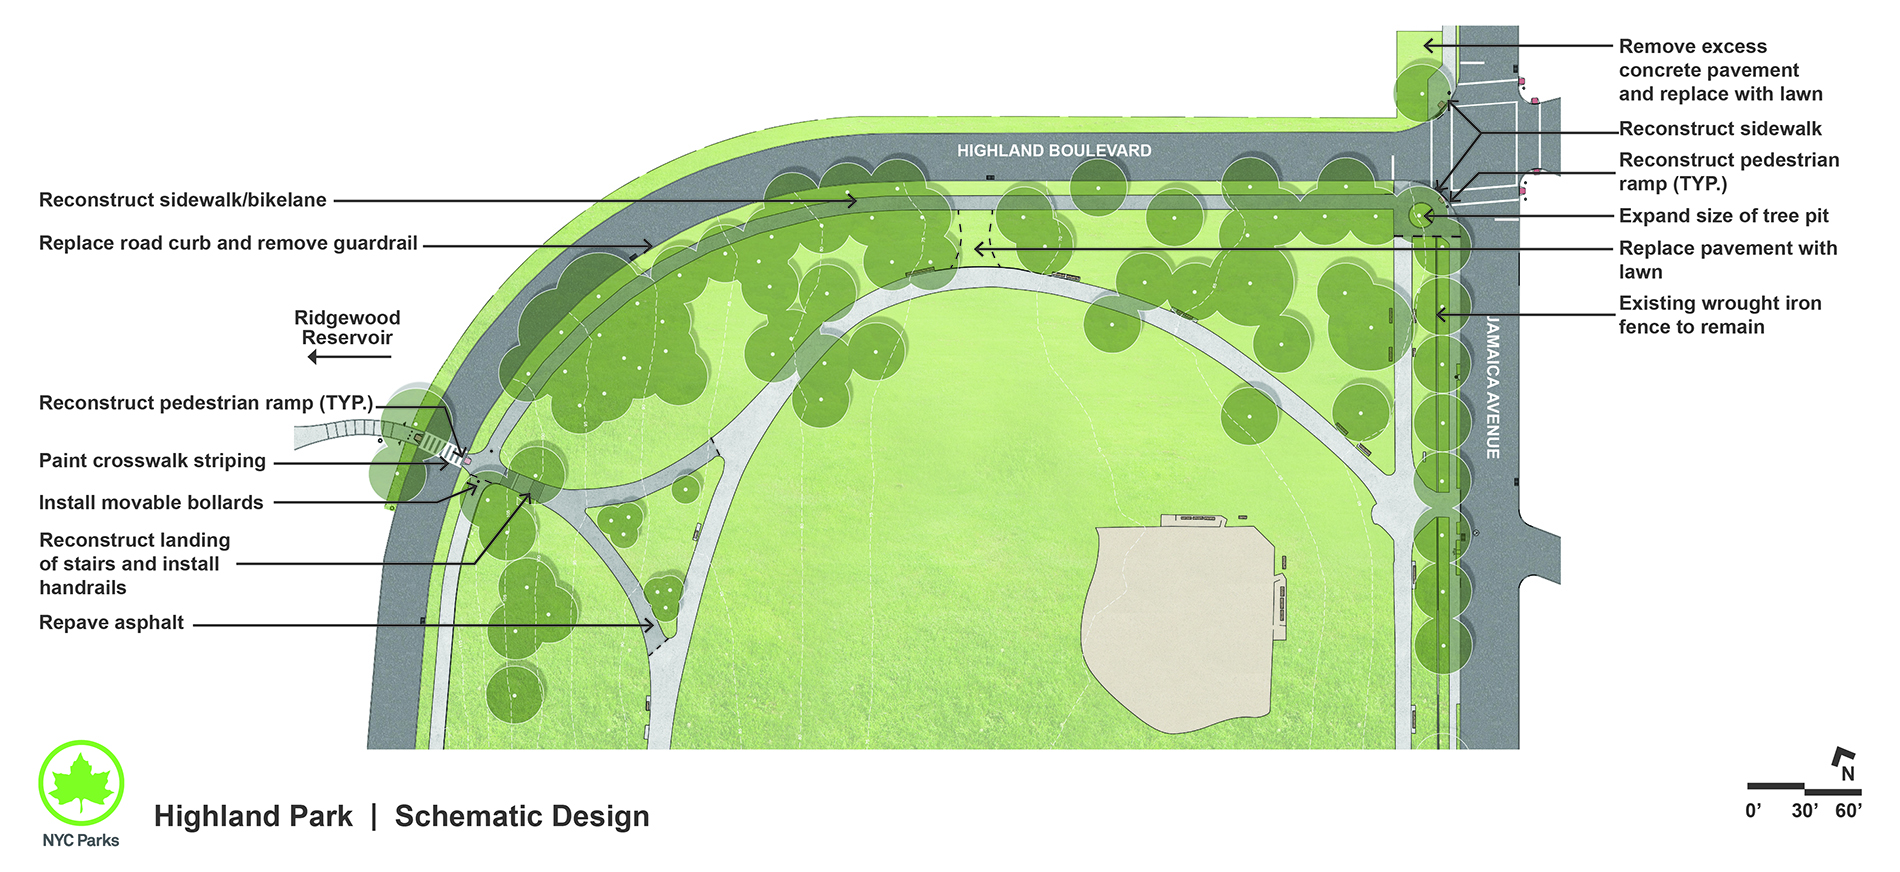 Design of Highland Park Pedestrian Paths and Sidewalks Reconstruction